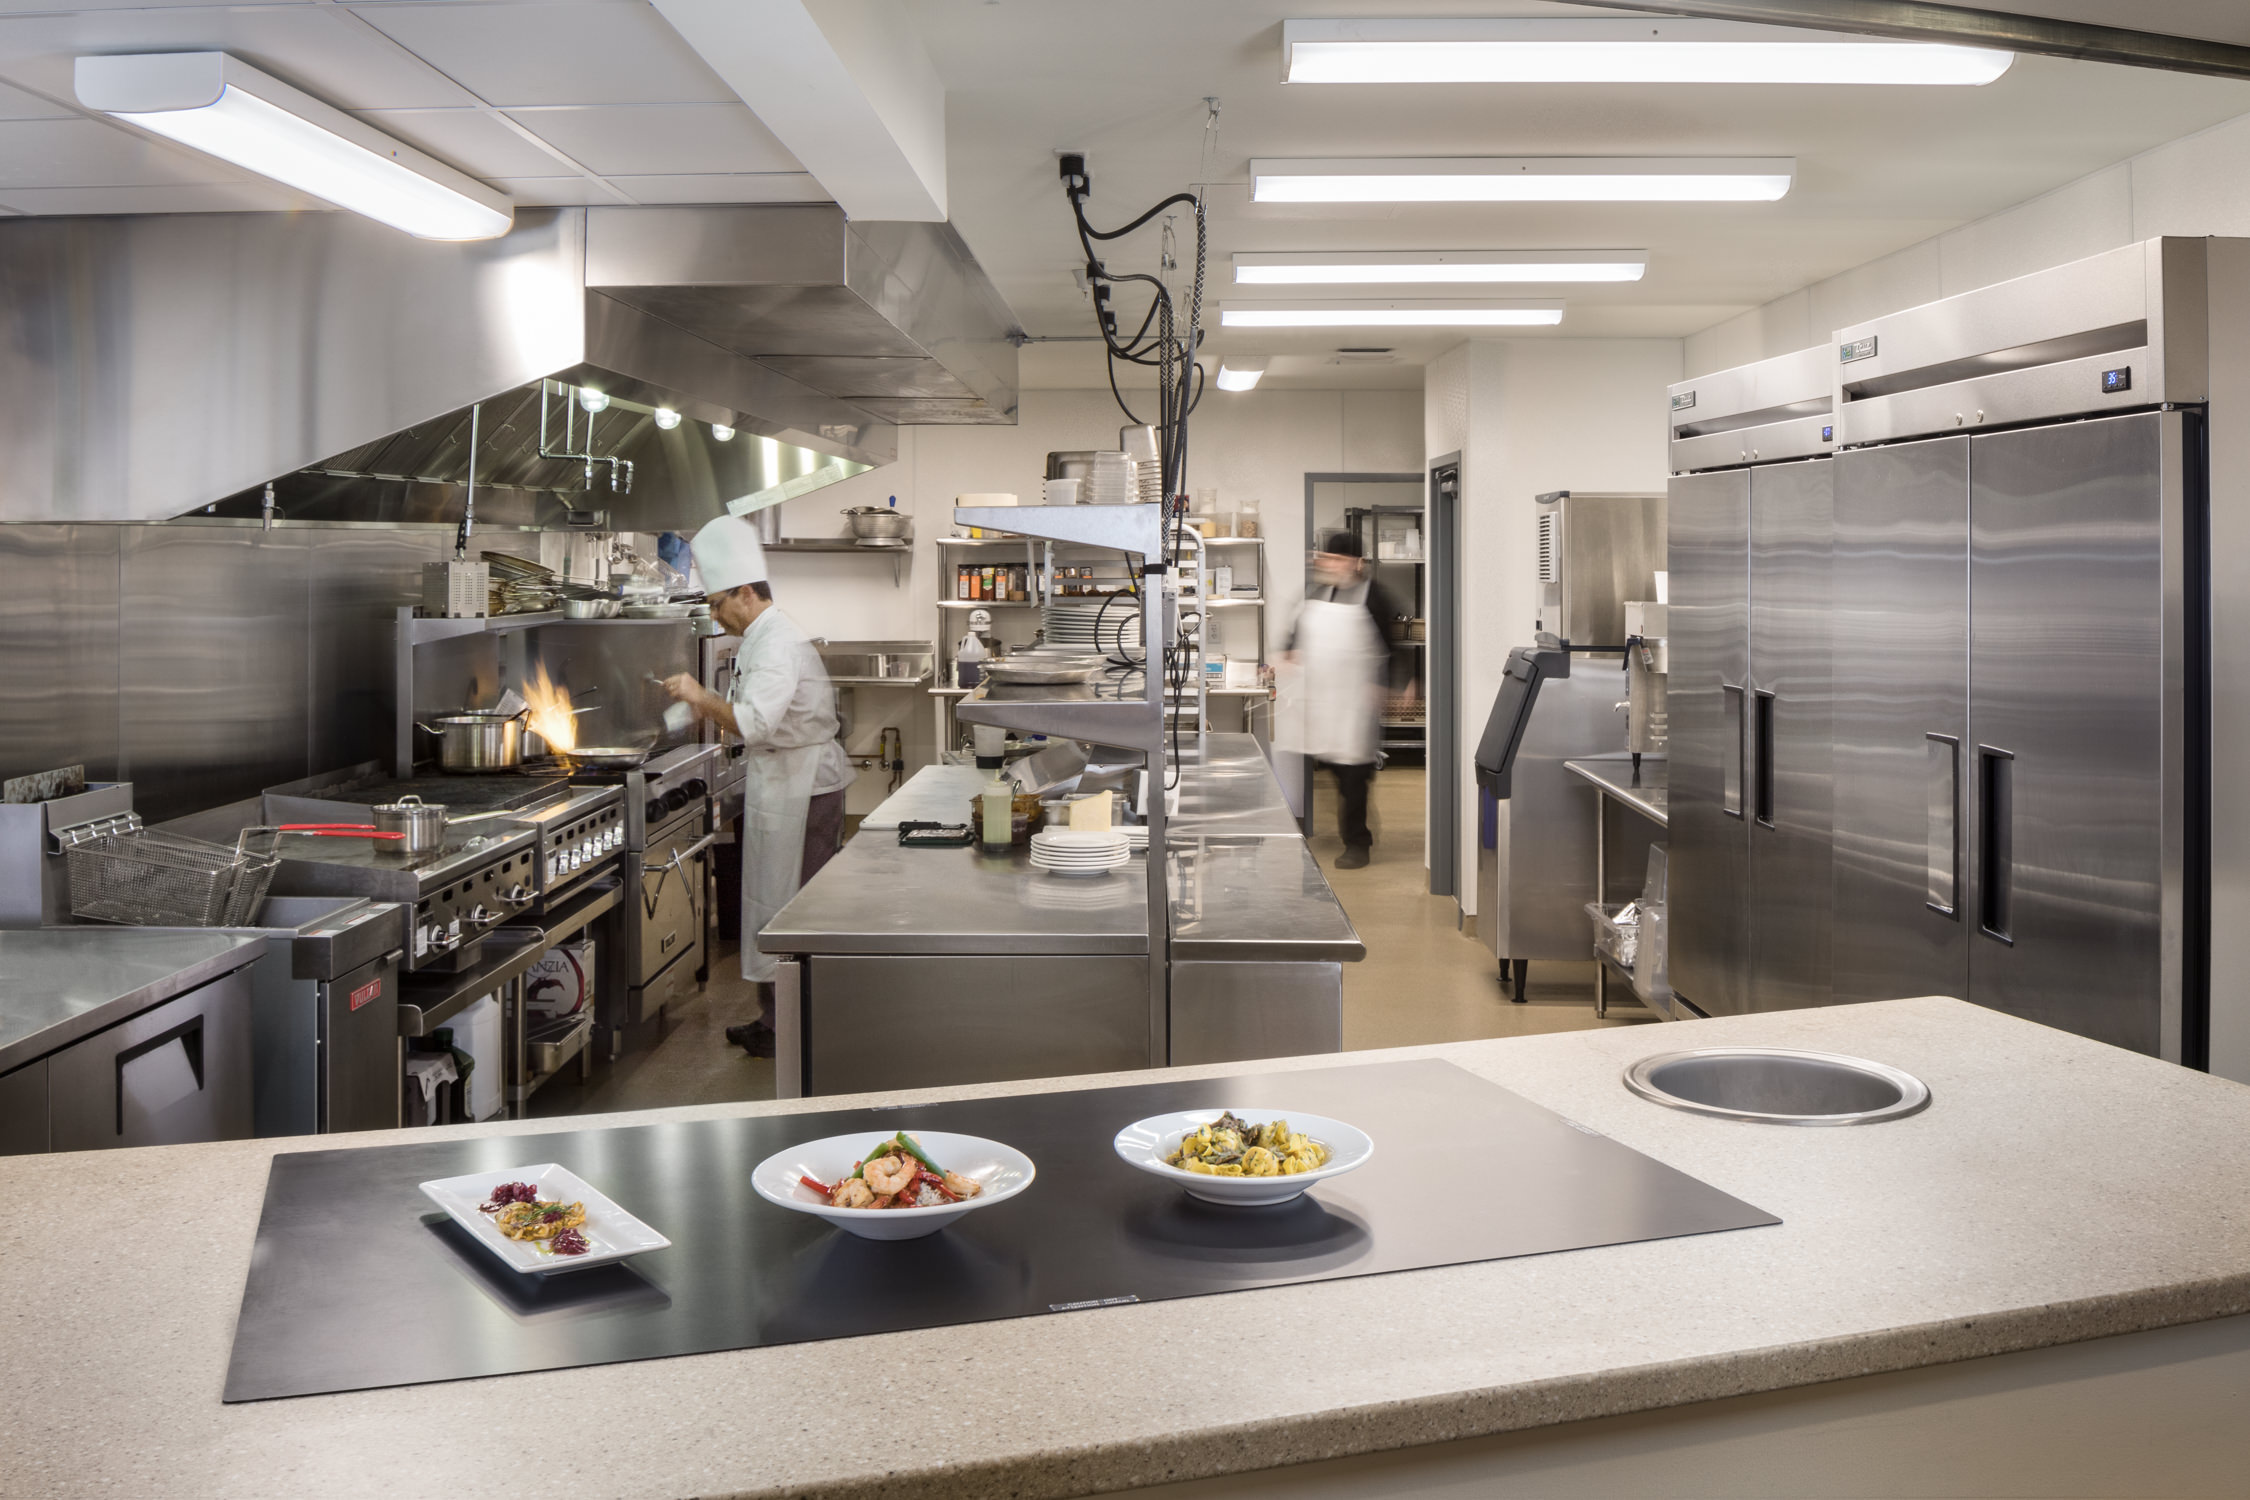 A photo by Stina Booth of chefs working the commercial kitchen of the Strode Independent Living Facility in Randolph Vermont